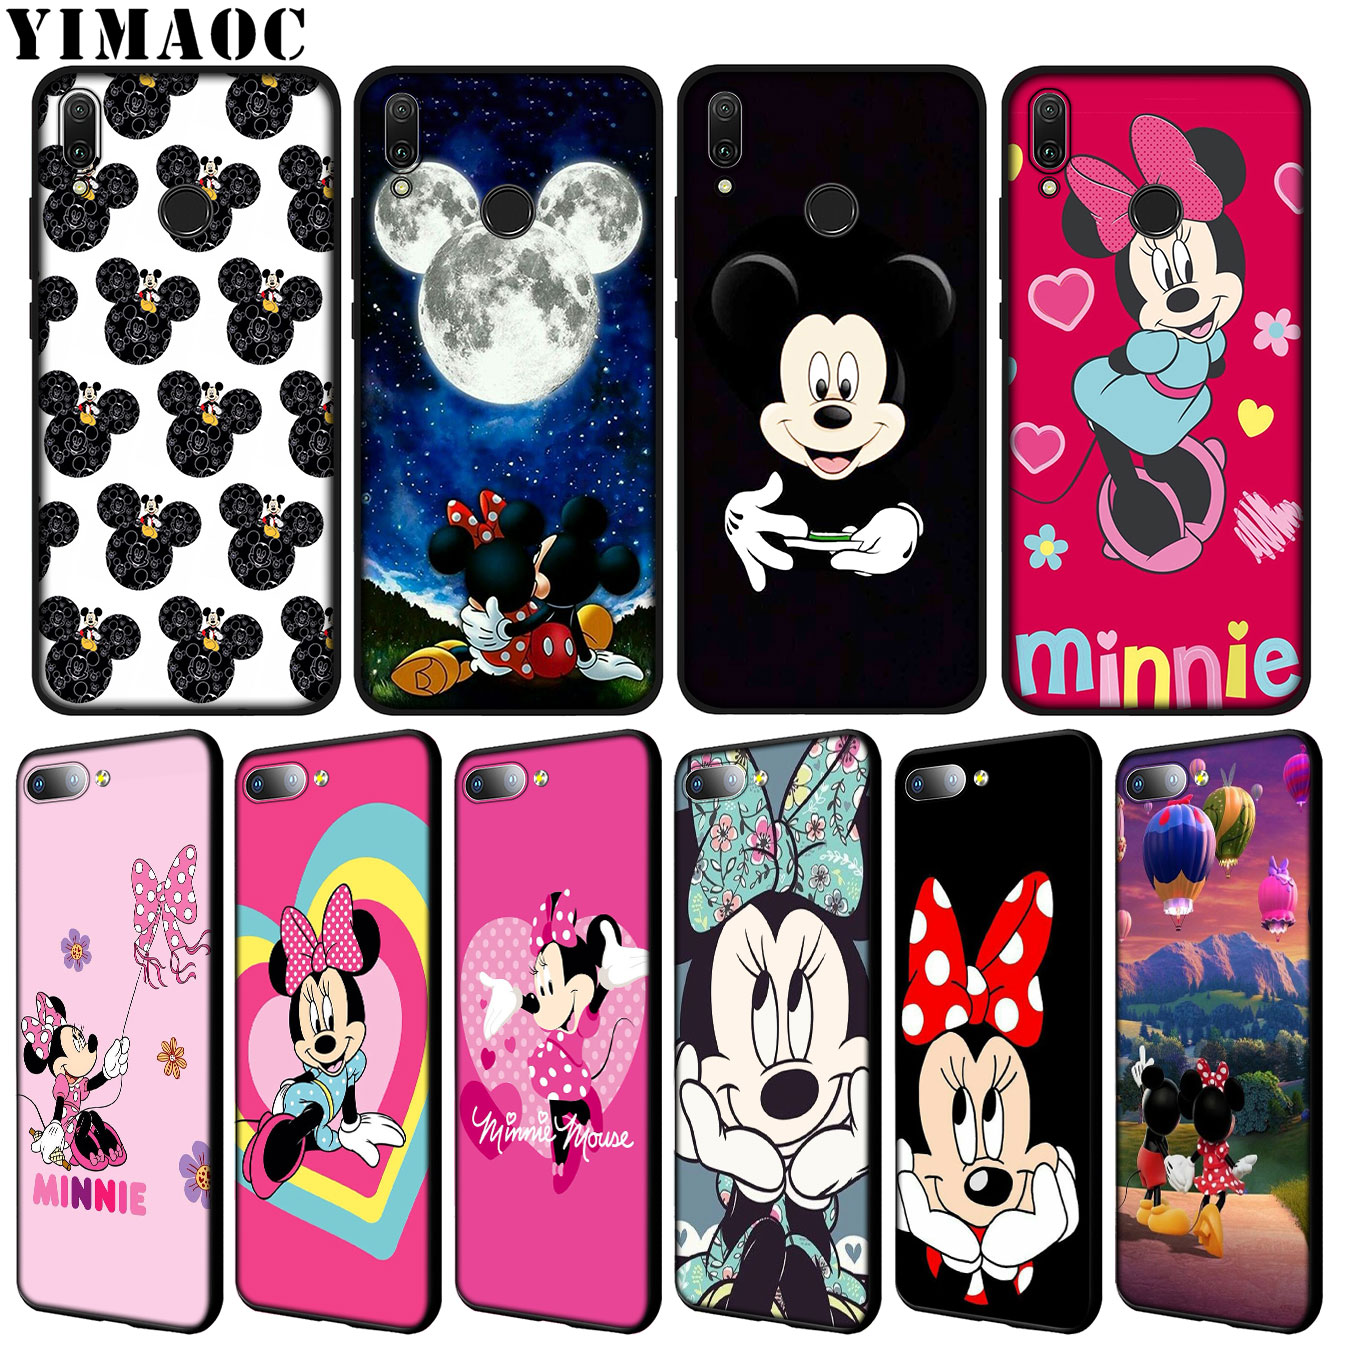 YIMAOC mickey minnie cute mouse Soft Case for Huawei Y9 Y7 Y6 Prime 2019 <font><b>Honor</b></font> 20 8C 8X 8 <font><b>9</b></font> 9X 10 <font><b>Lite</b></font> 7C 7X 7A Pro Cover image